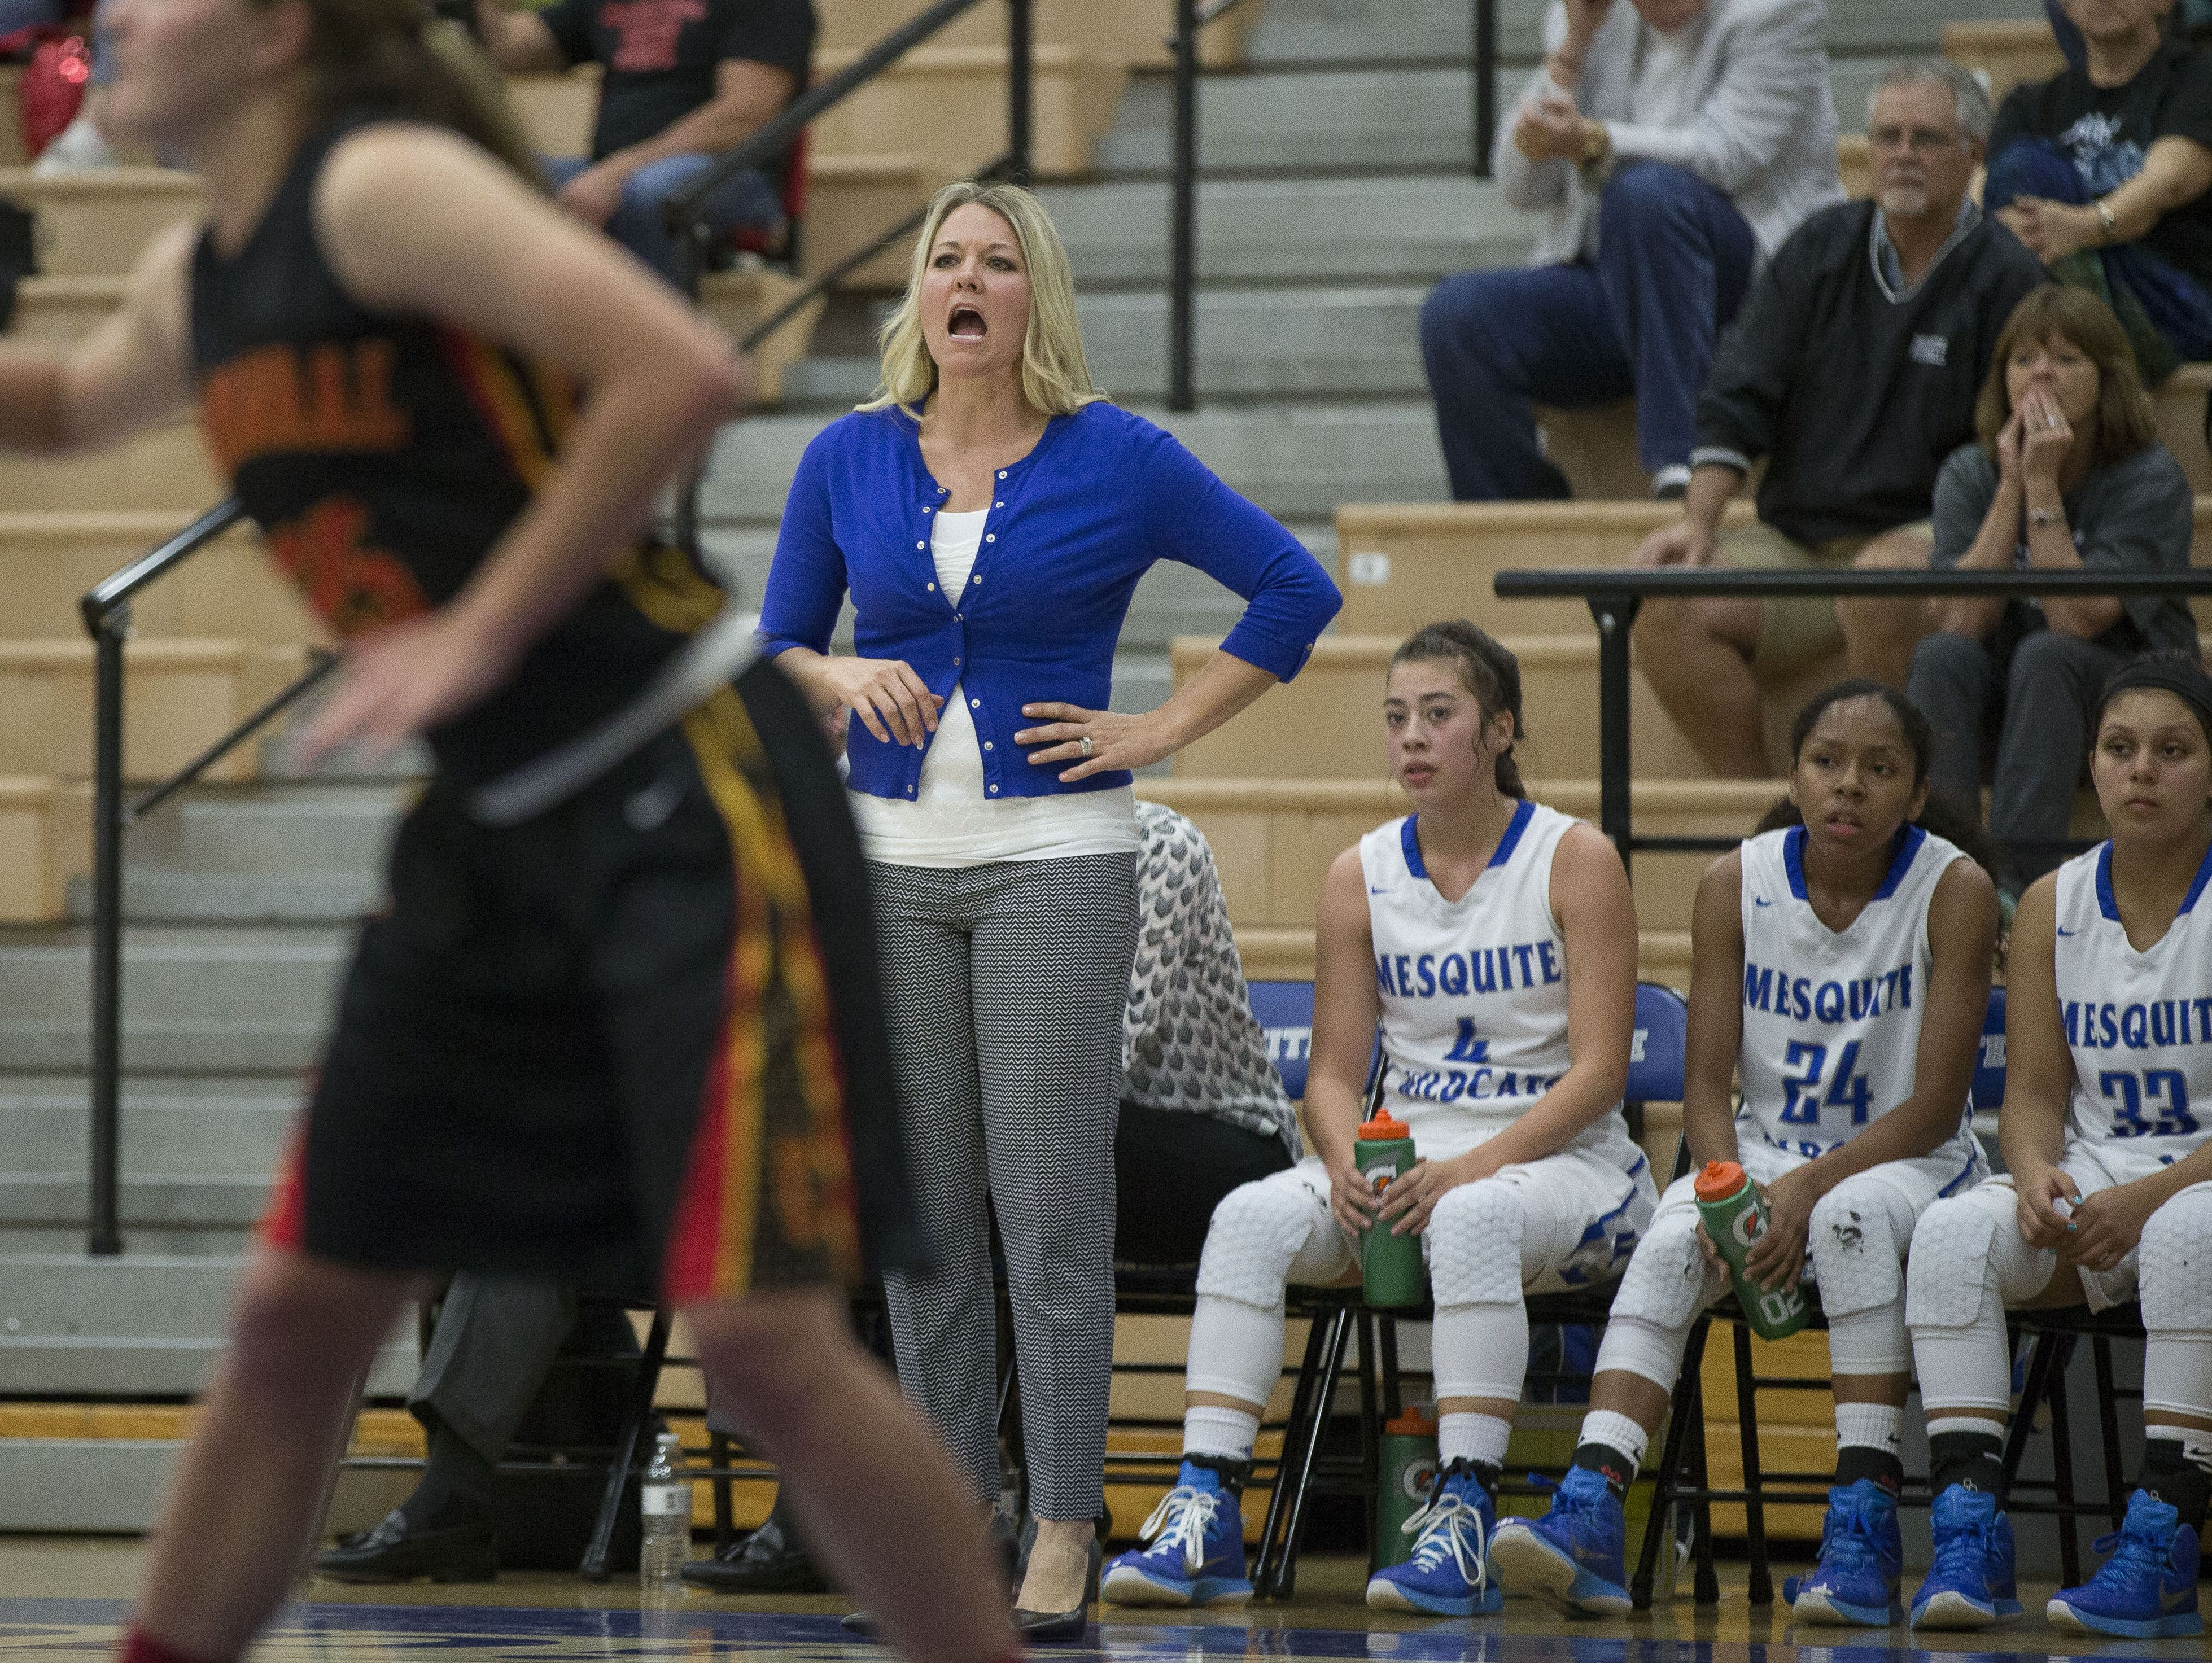 Before the season, Mesquite coach Candice Gonzales expressed concern about being put in 5A where she knew the competition wouldn't be strong enough to challenge her loaded squad.